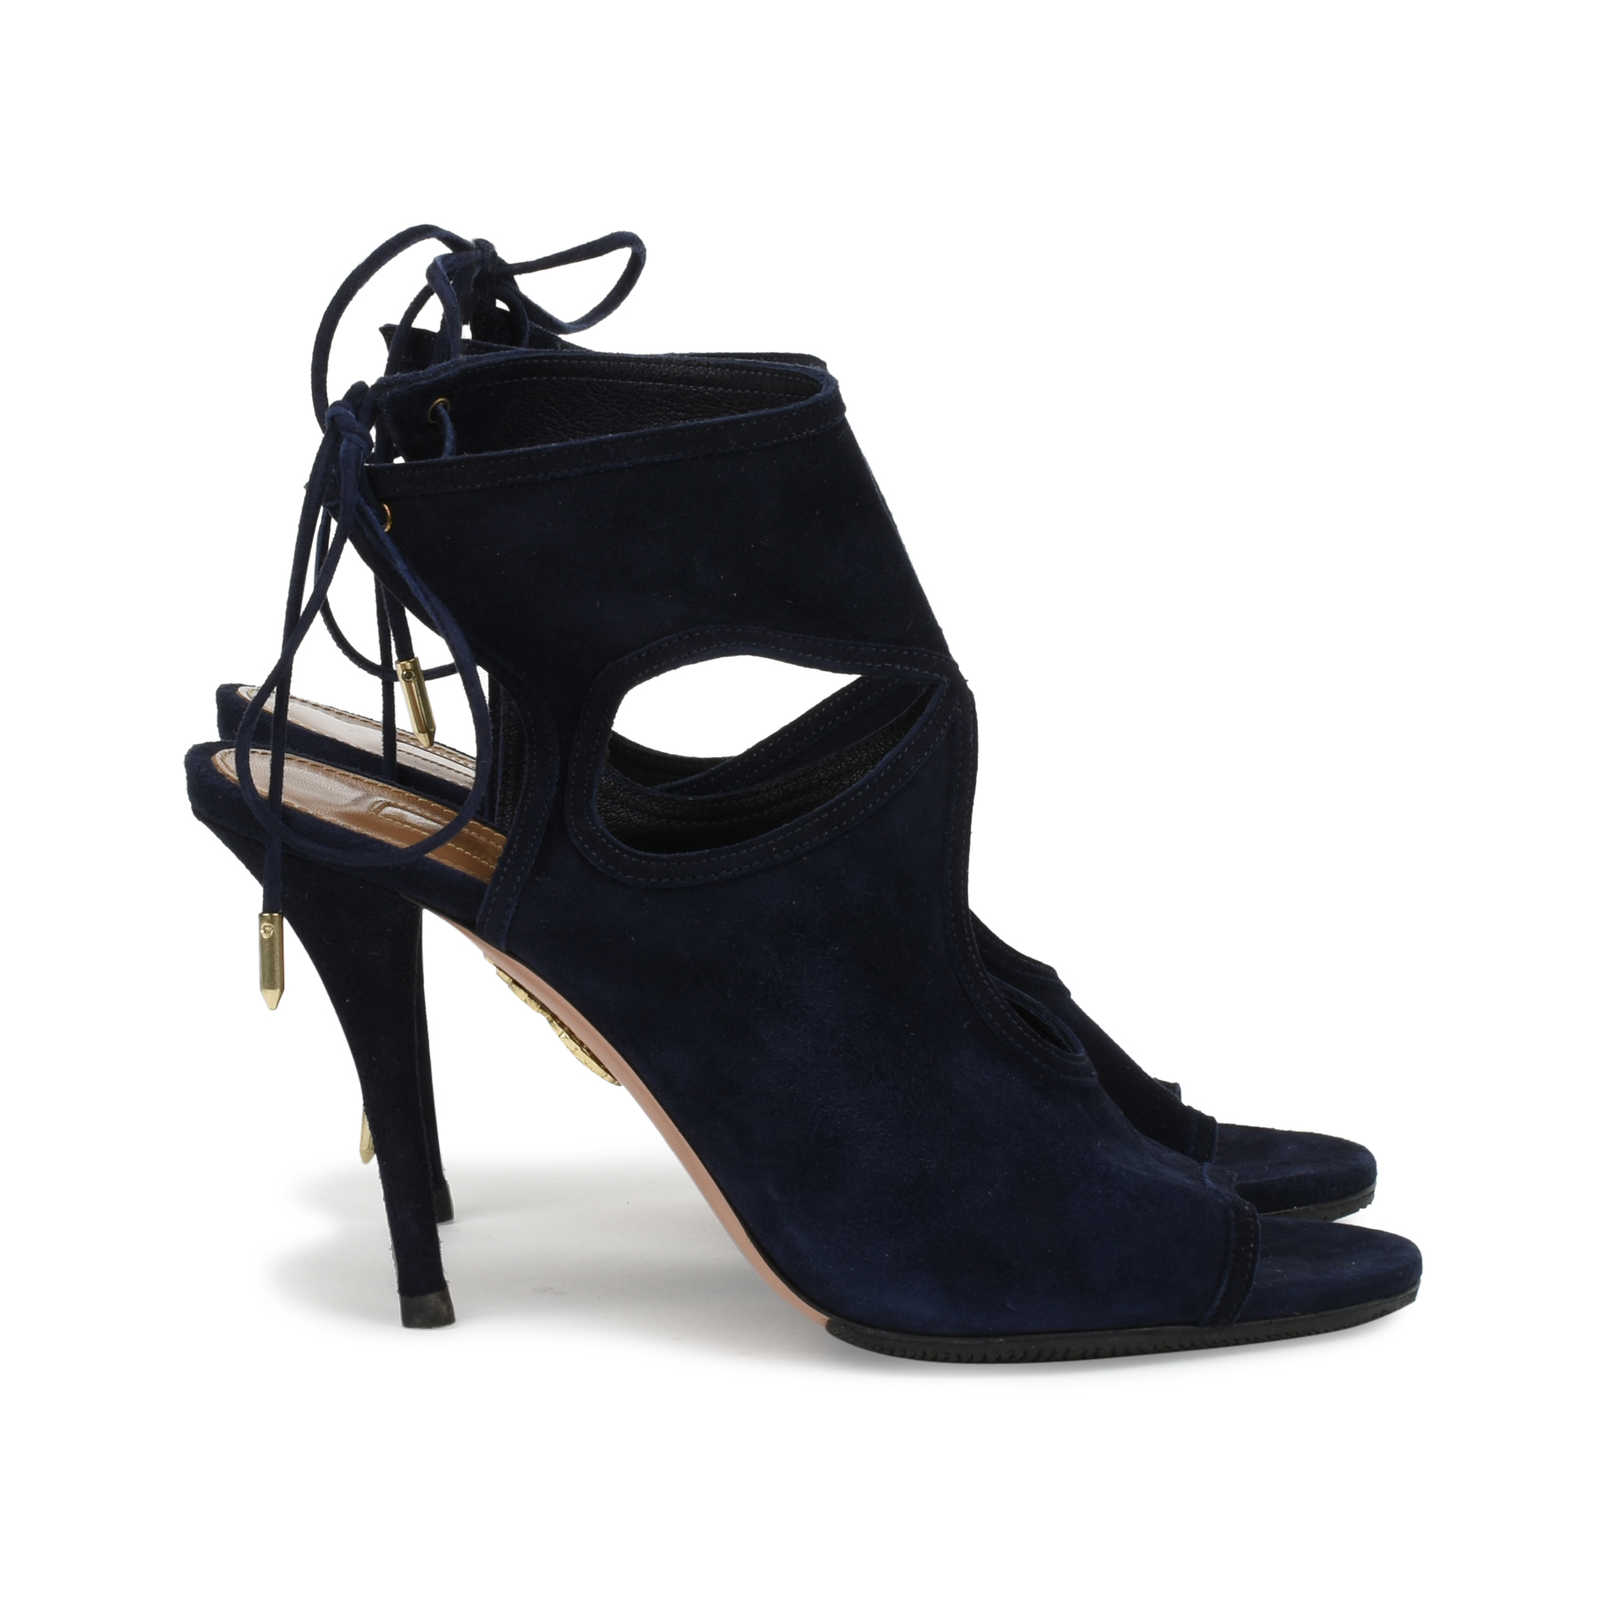 8d1ac4e3290f ... Authentic Second Hand Aquazzura Sexy Thing Suede Sandals  (PSS-444-00006) ...